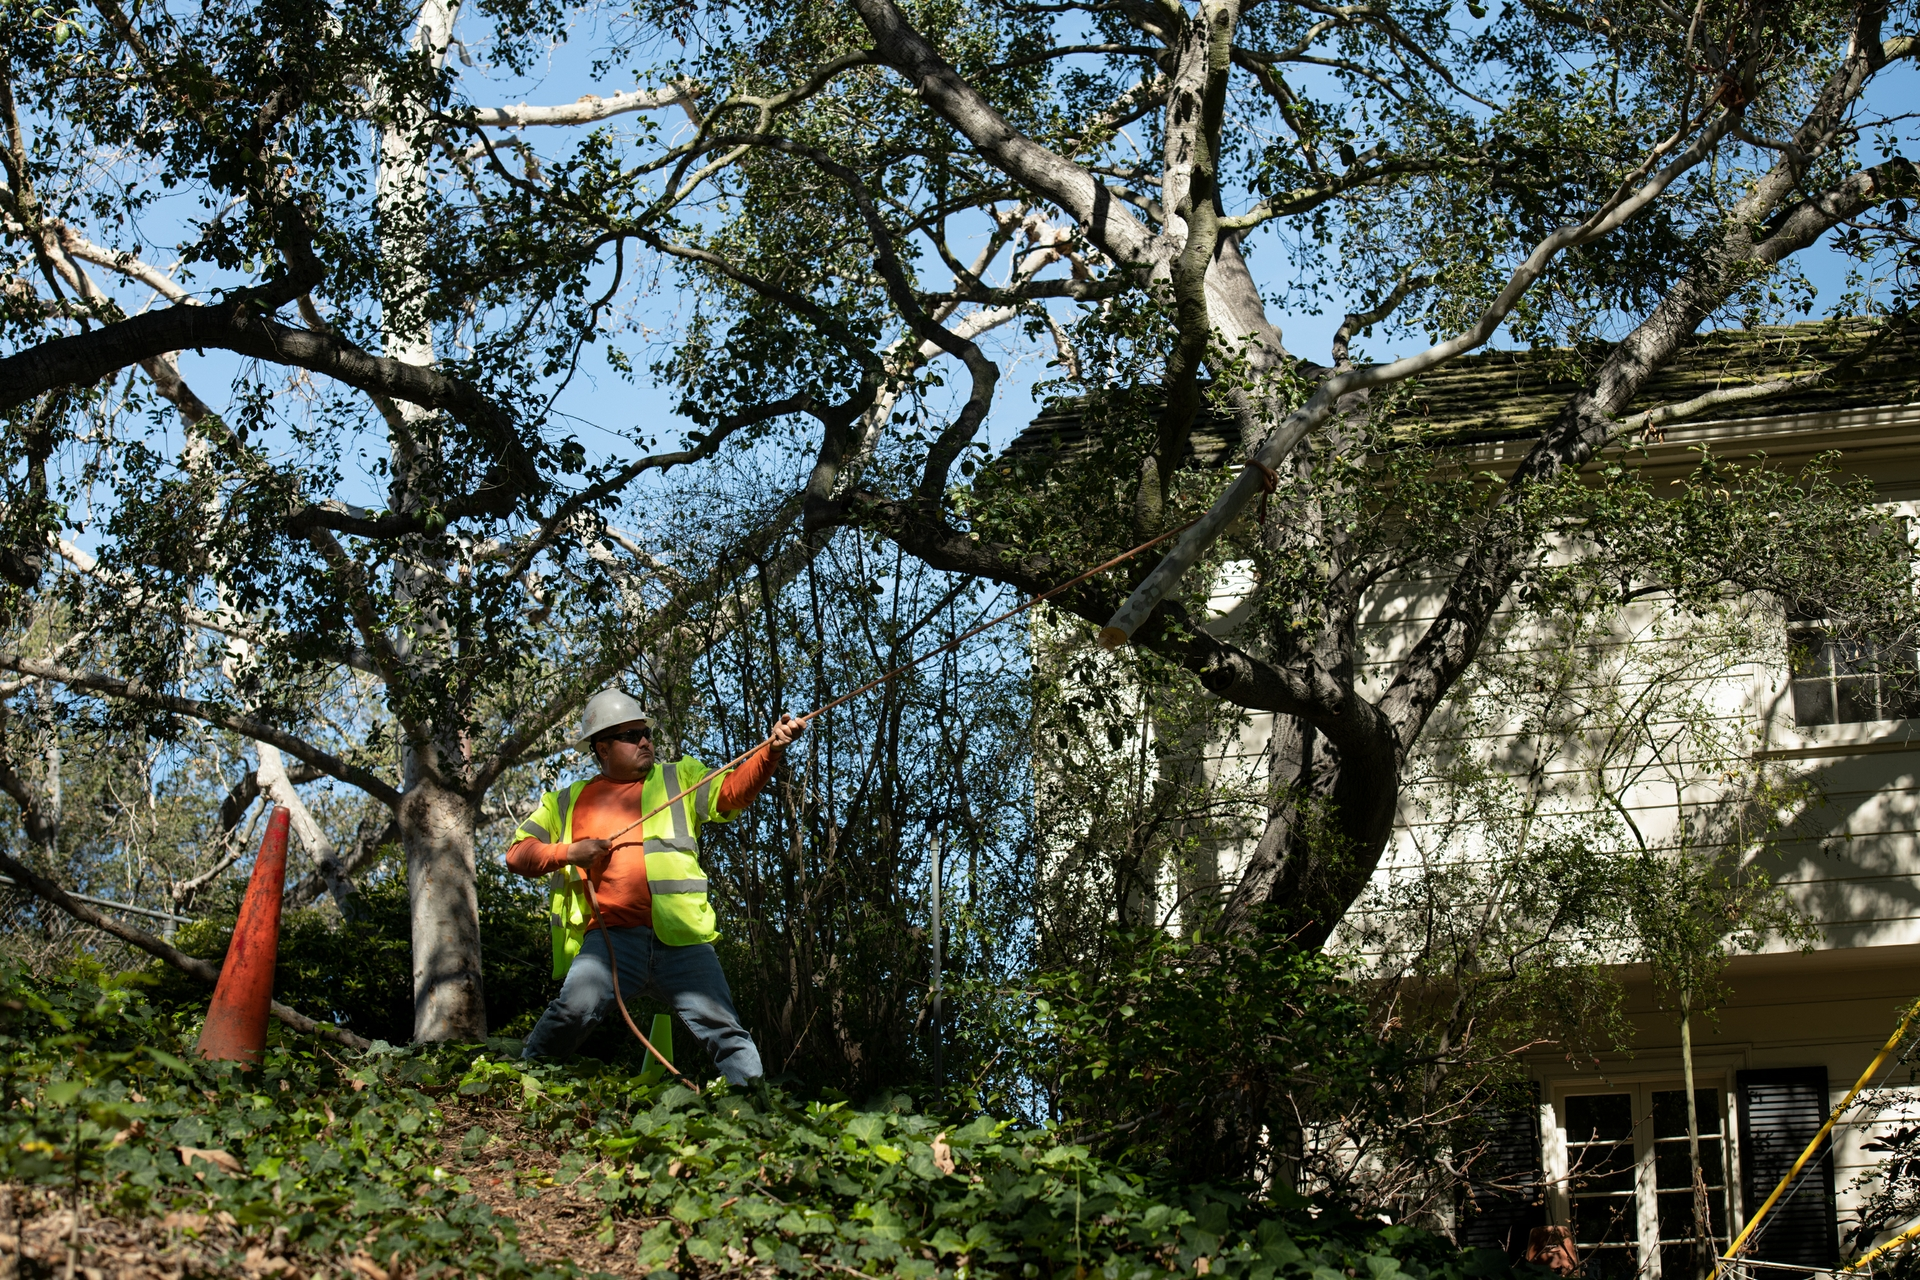 A ground man uses a rope to raise a chain saw to a worker trimming branches near SCE power lines.